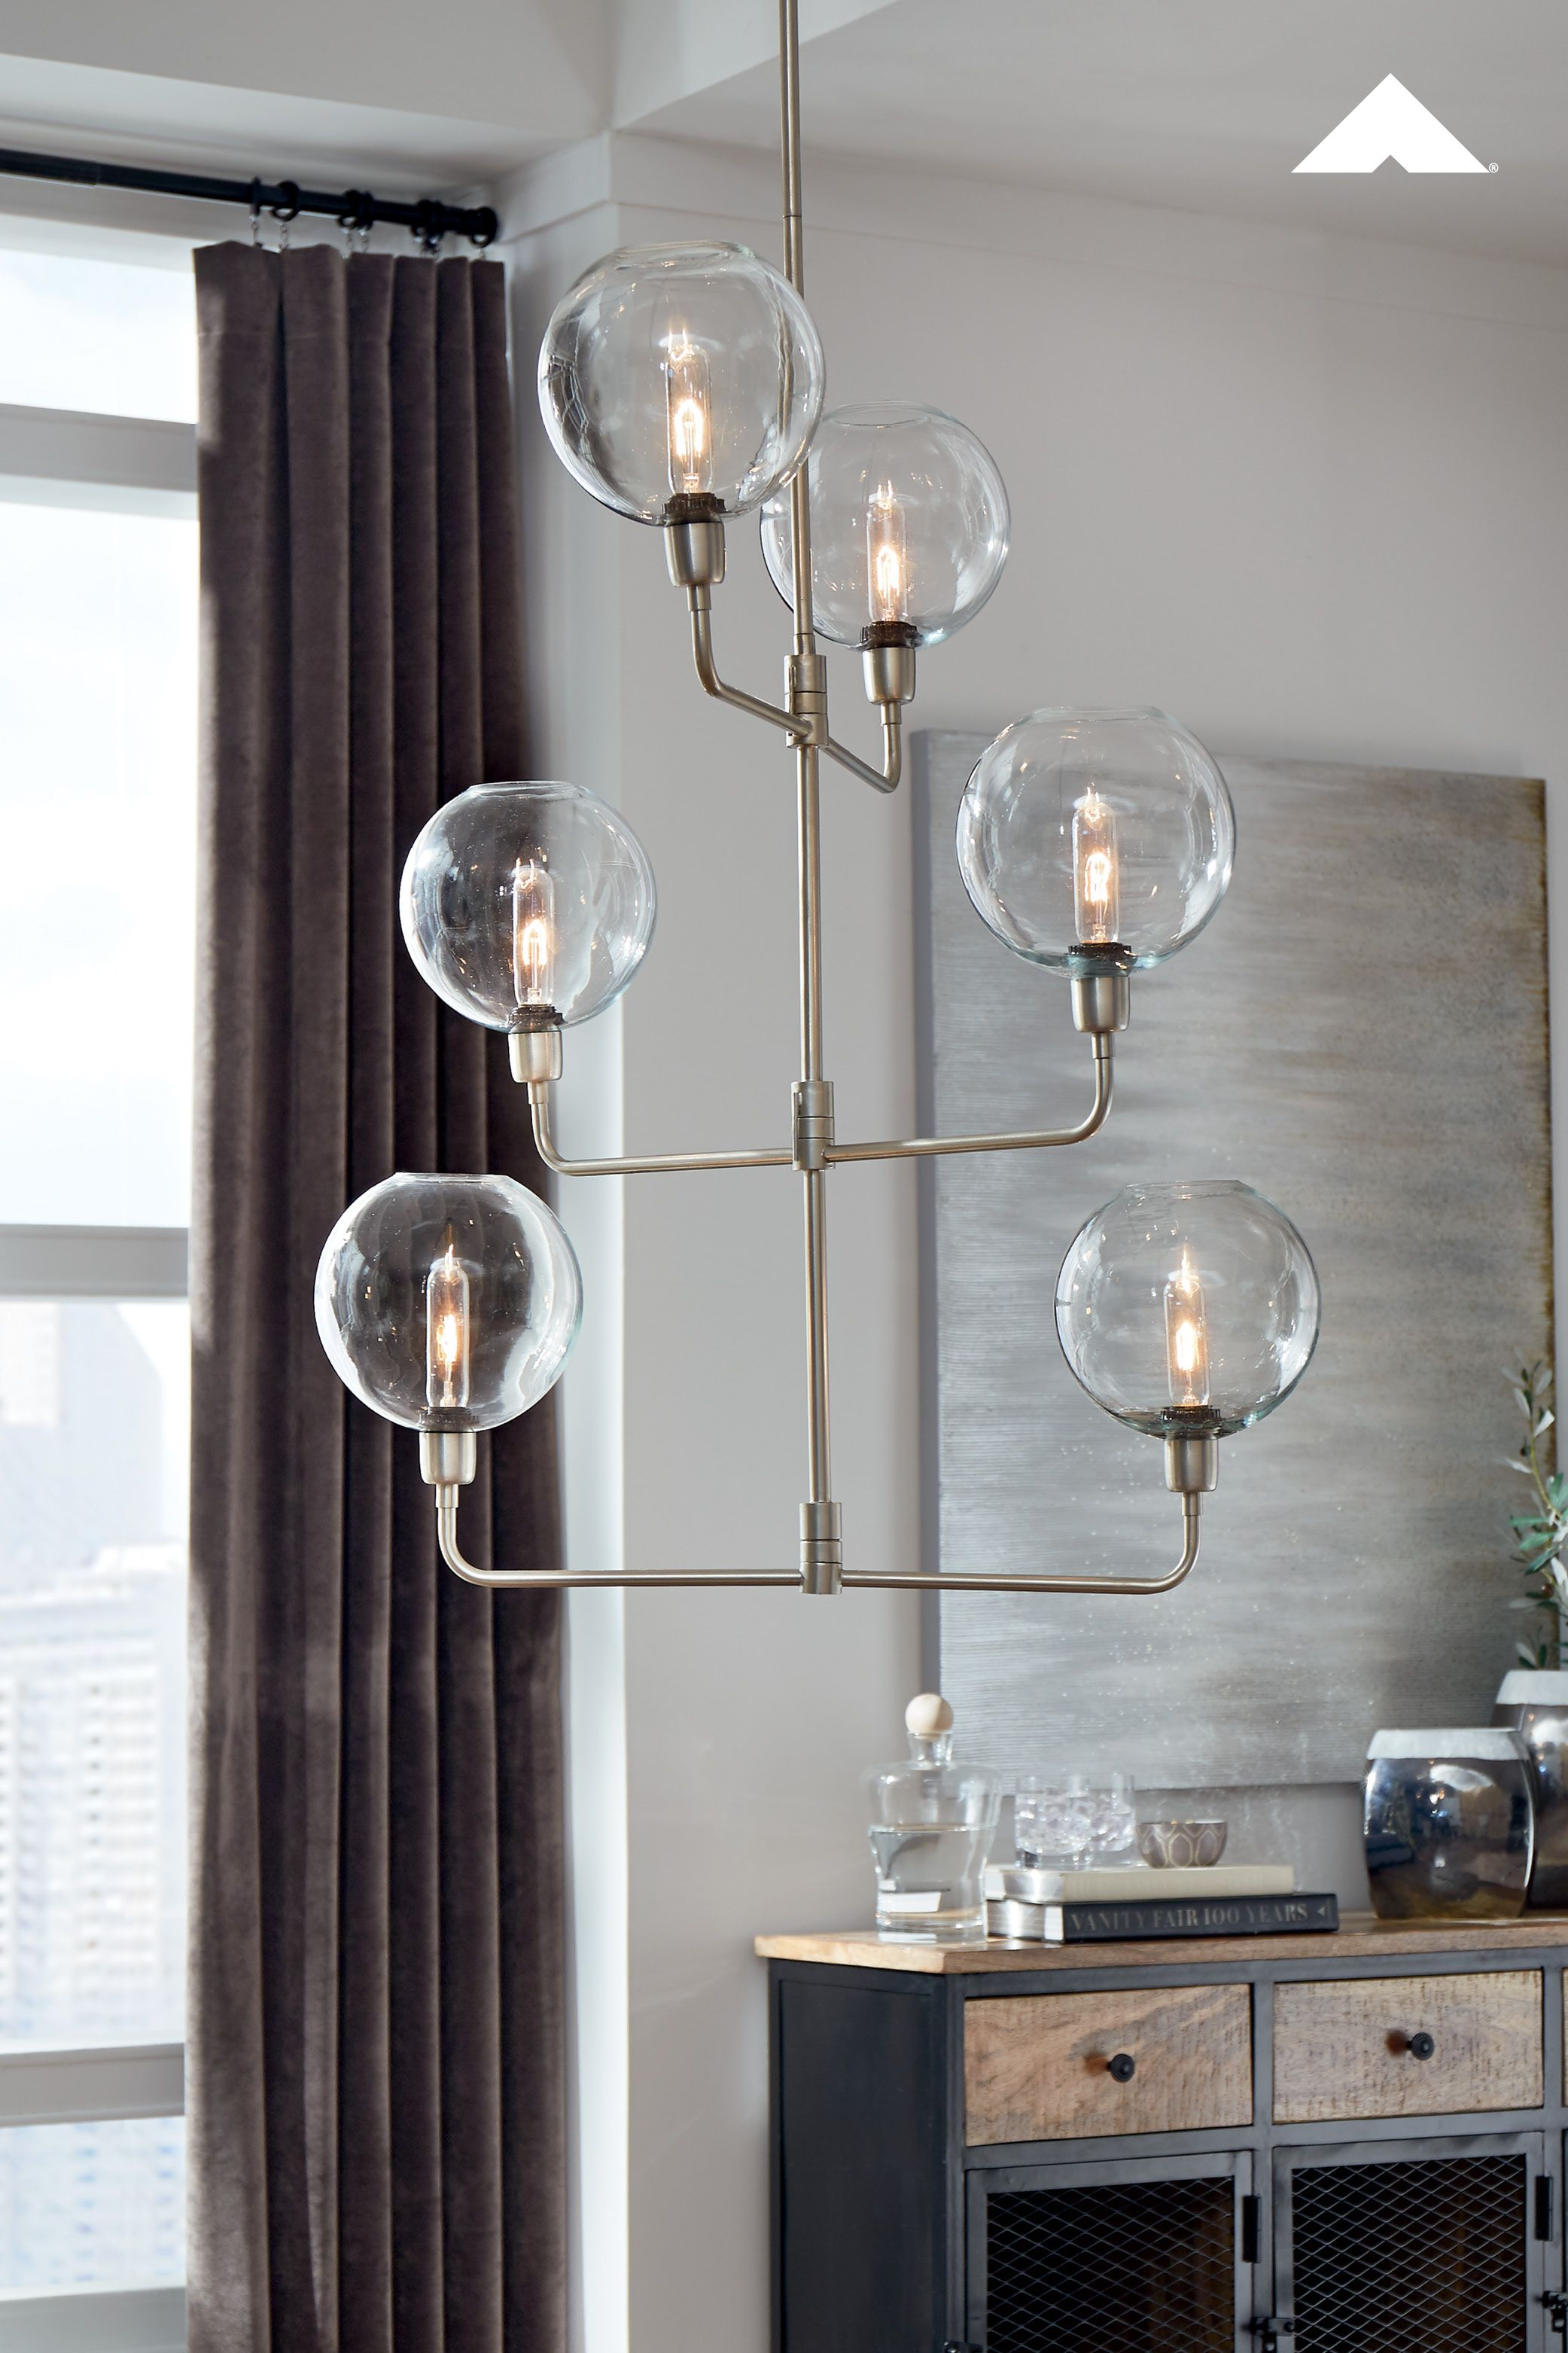 Merton Clear Silver Finish Metal Pendant Lamp By Ashley Furniture